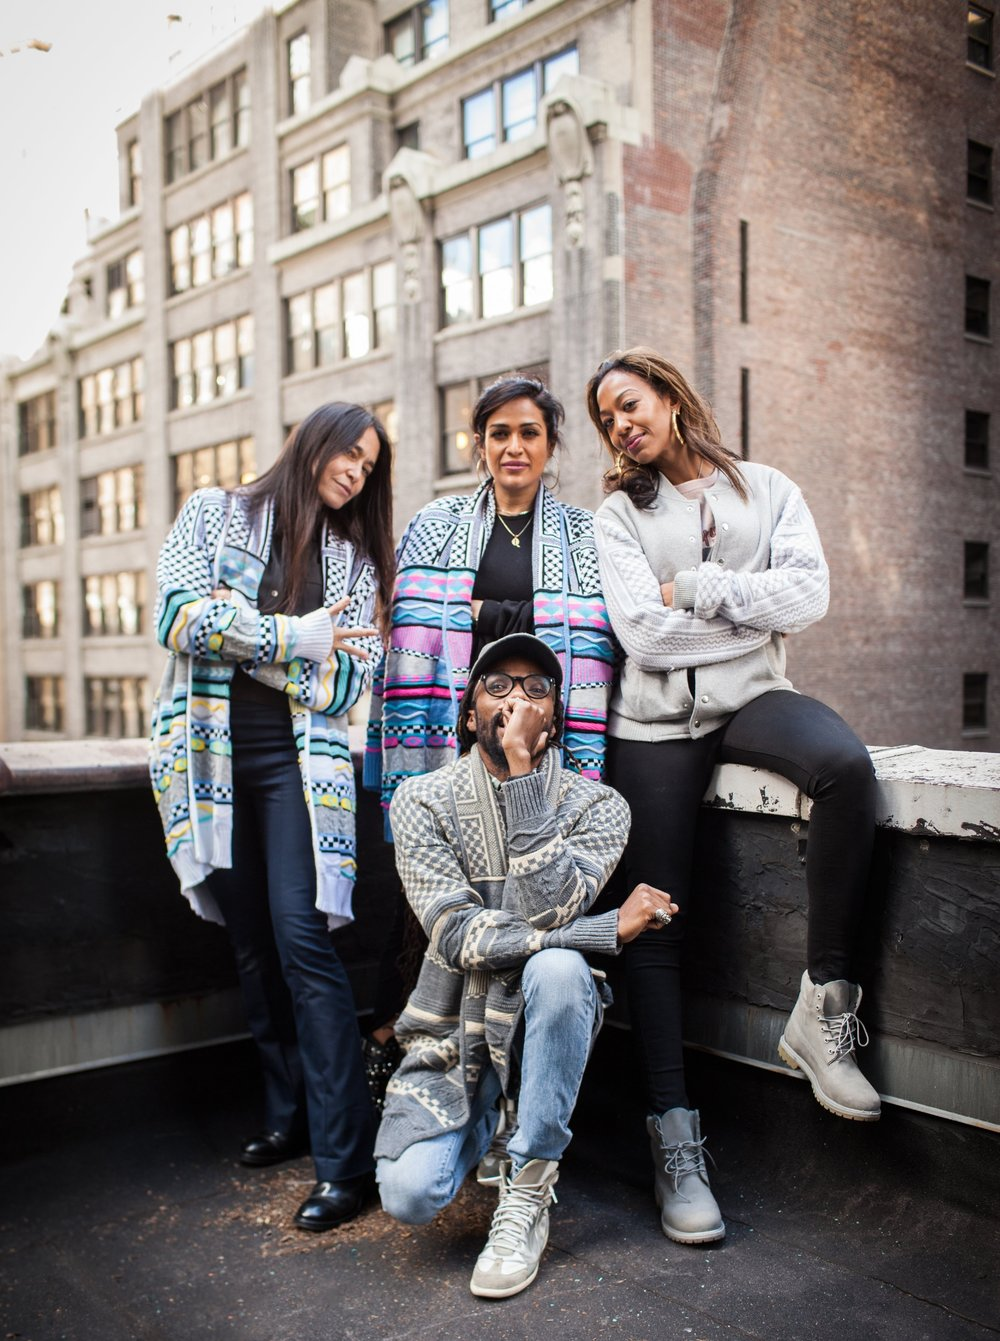 Founder Jill Andresevic, Ainy, Sari, and Yahdon posing in ANZ on city rooftop.